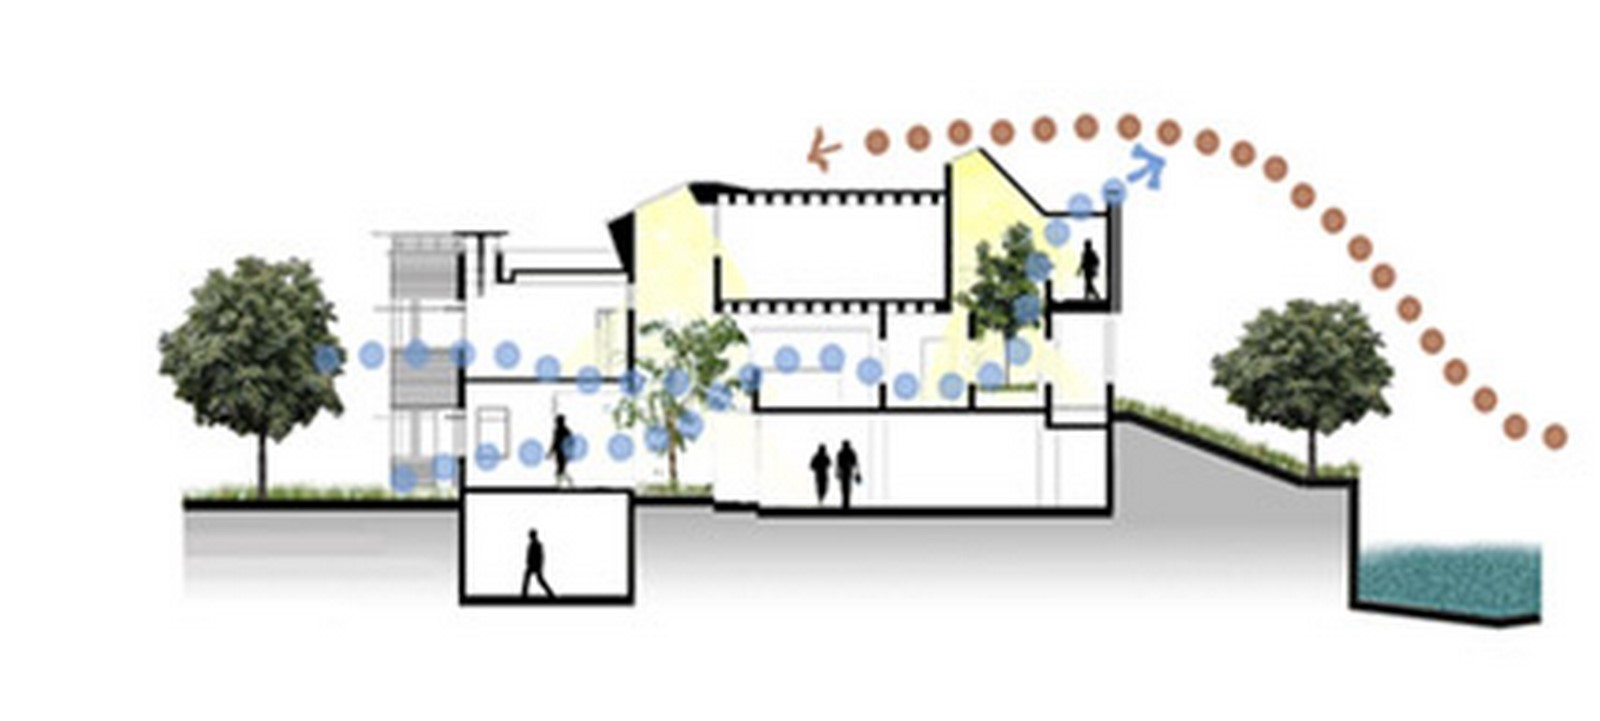 Climate responsive architecture in Indian cities - Solar Passive Hostel - Sheet6